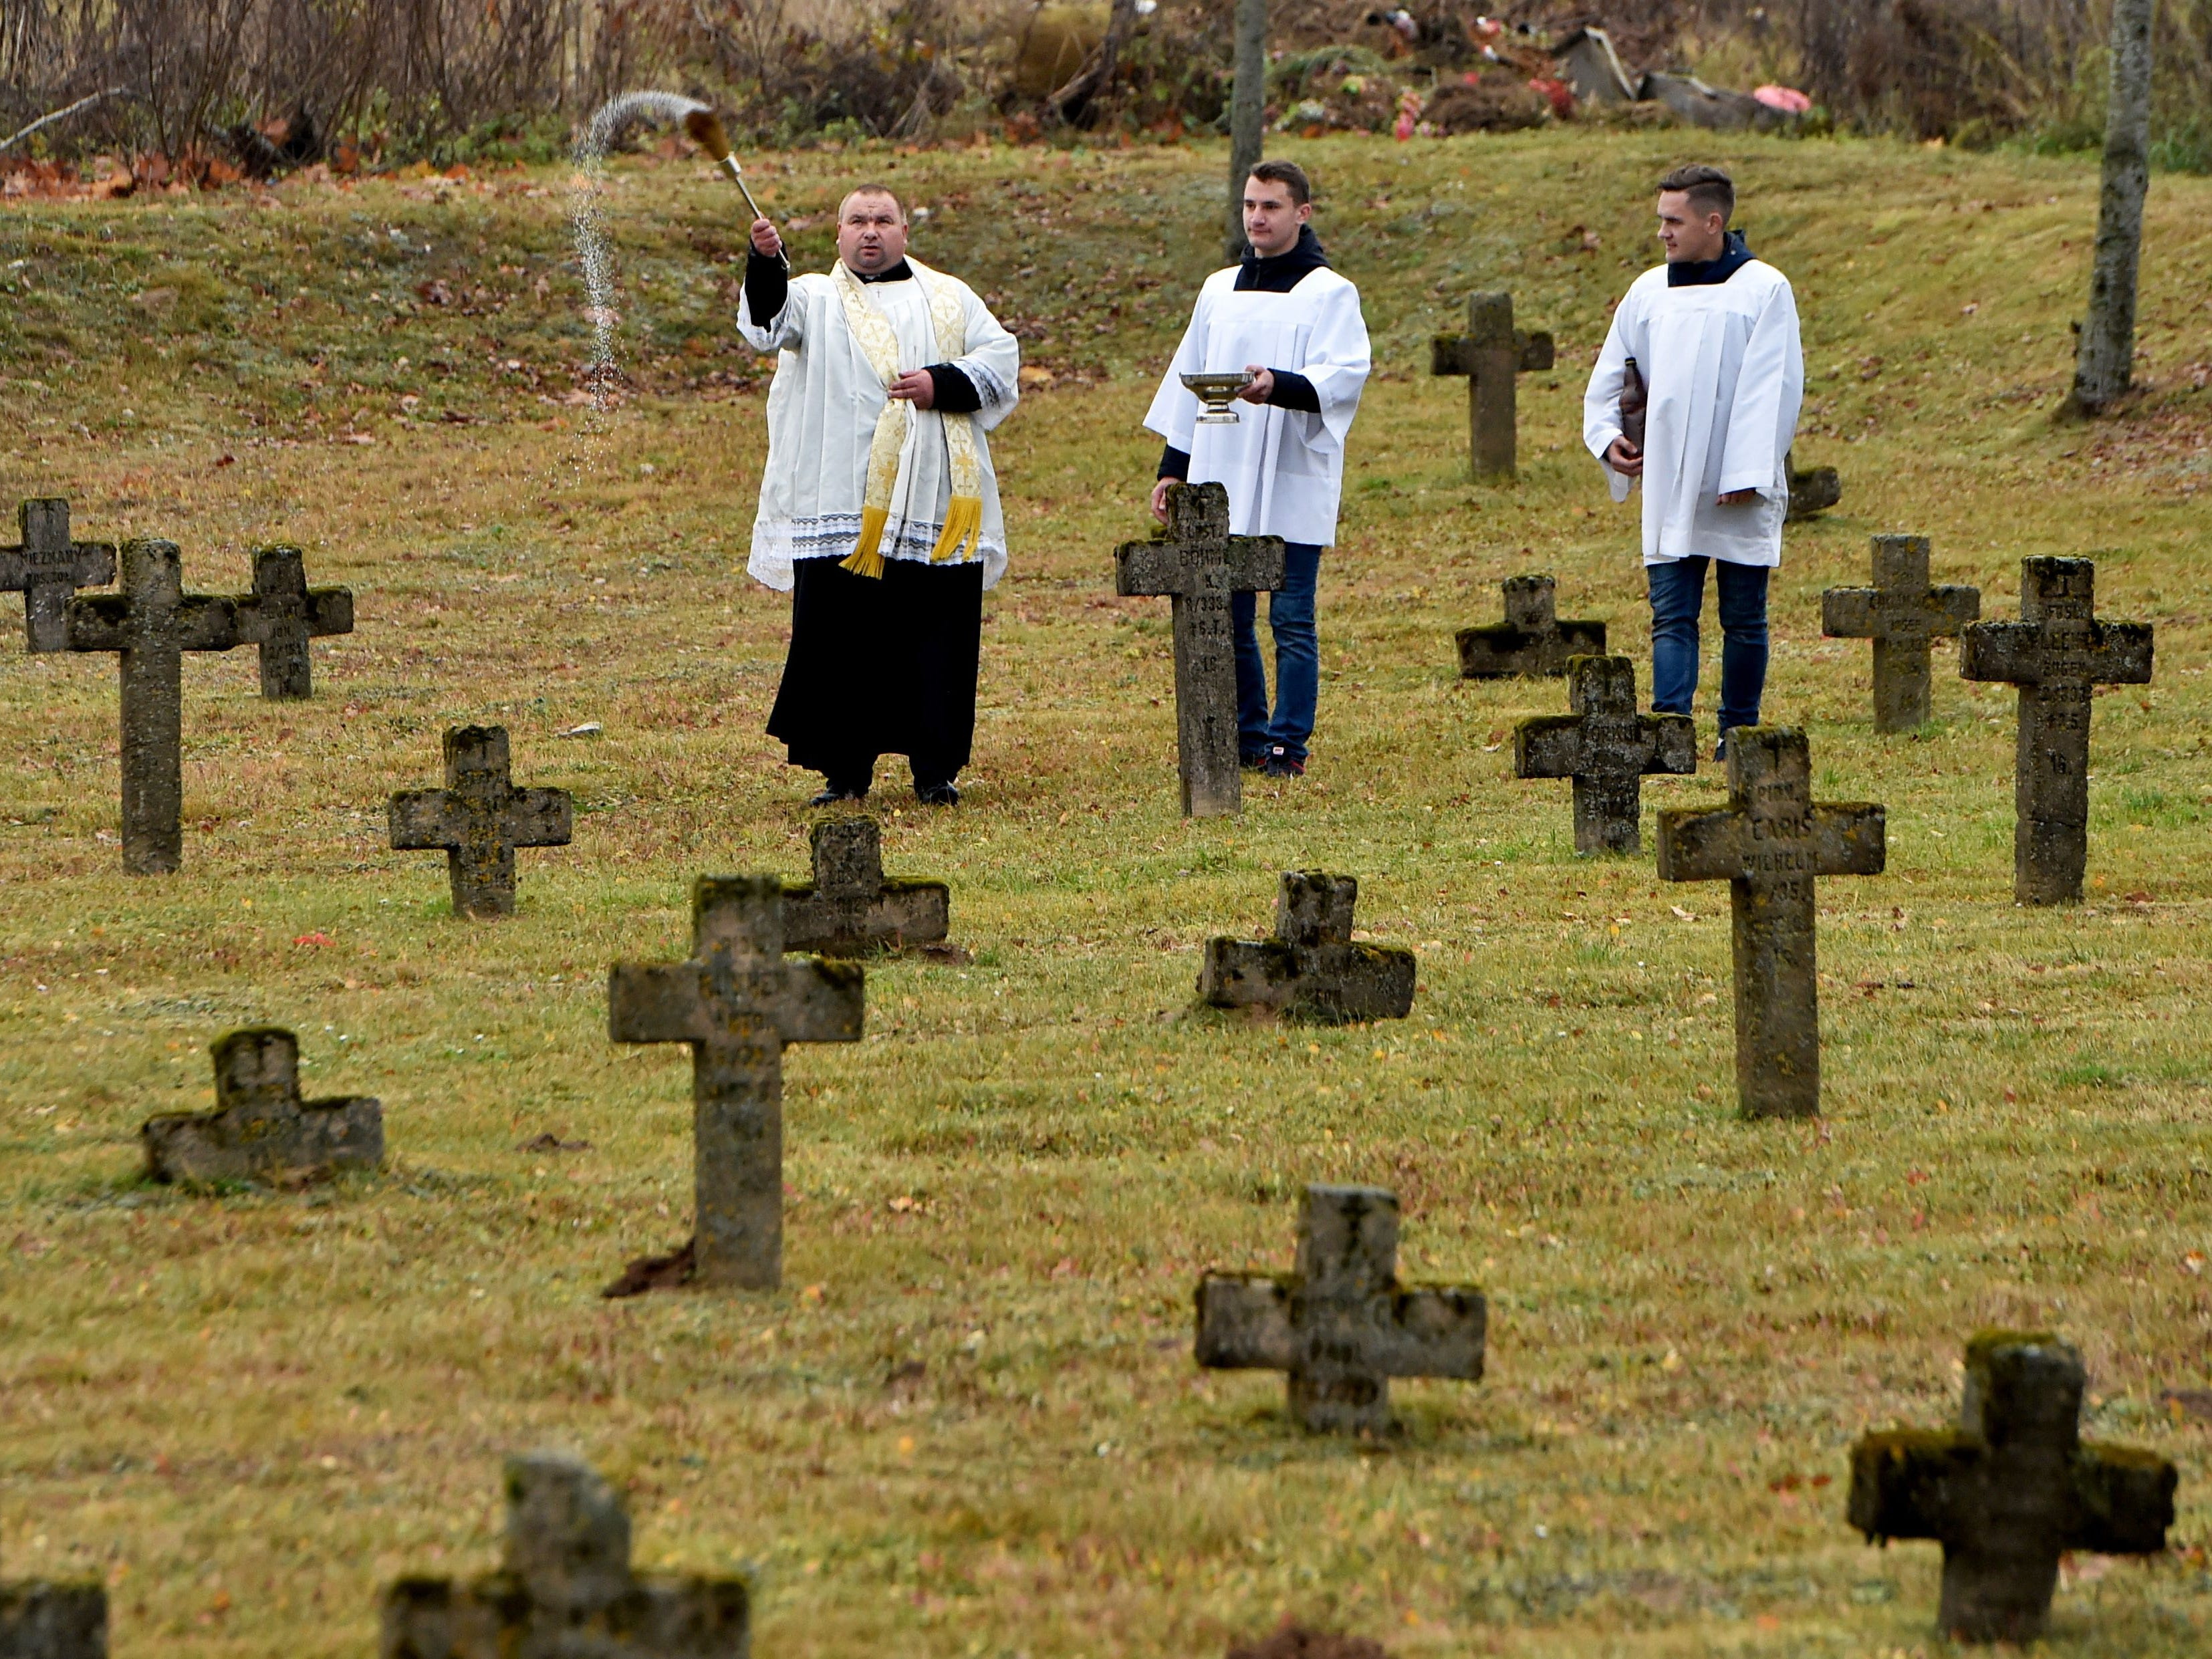 This Belarus' Catholic priest blesses graves at a cemetery during the All Saints' Day in the village of Baruny on November 1, 2018.